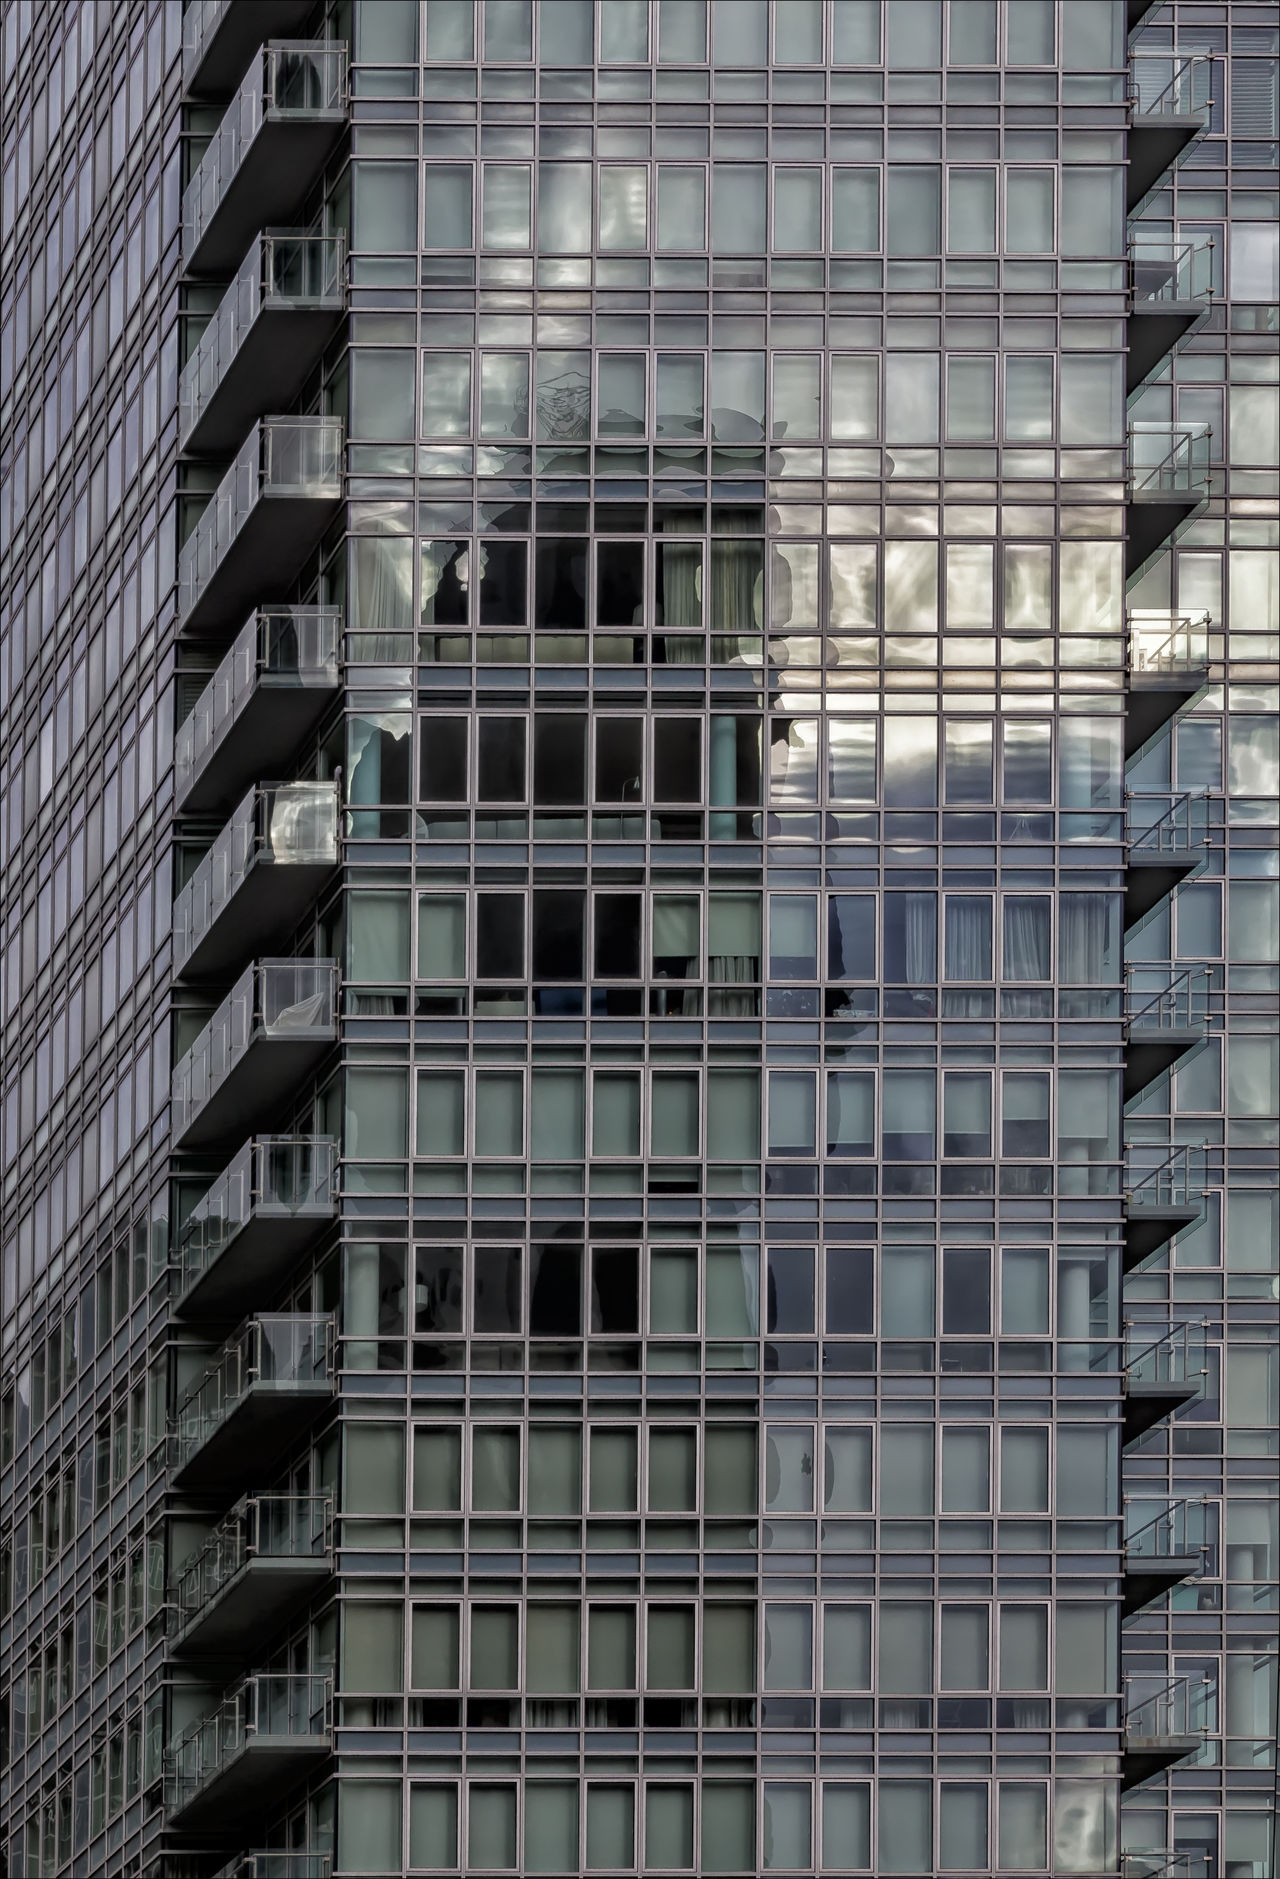 Beautiful stock photos of glas, built structure, architecture, building exterior, window